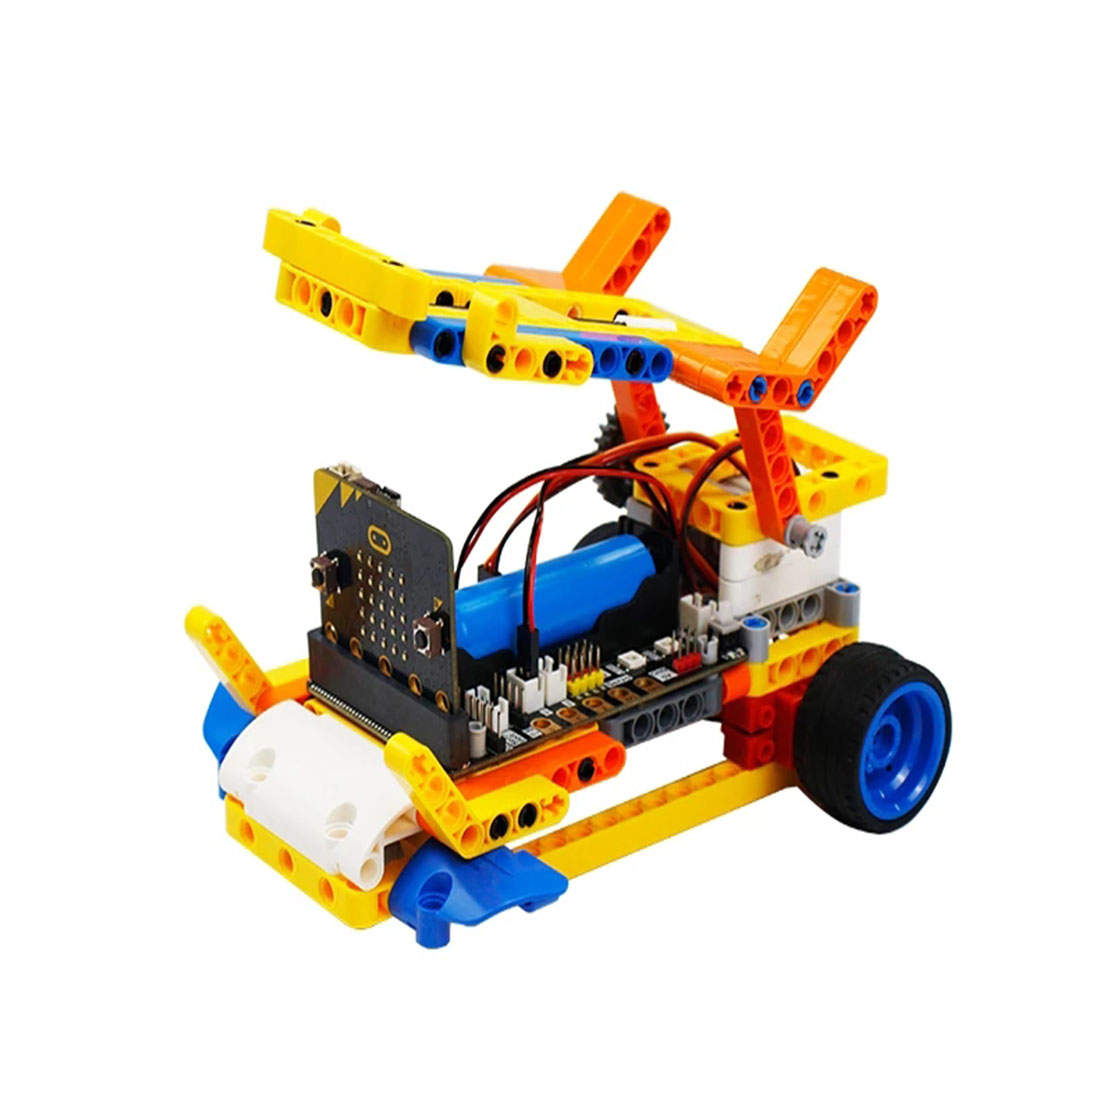 Program Intelligent Robot Building Block Car Kit Various Shapes Steam Programming Education Car For Micro:Bit Programable Toys skipping rope